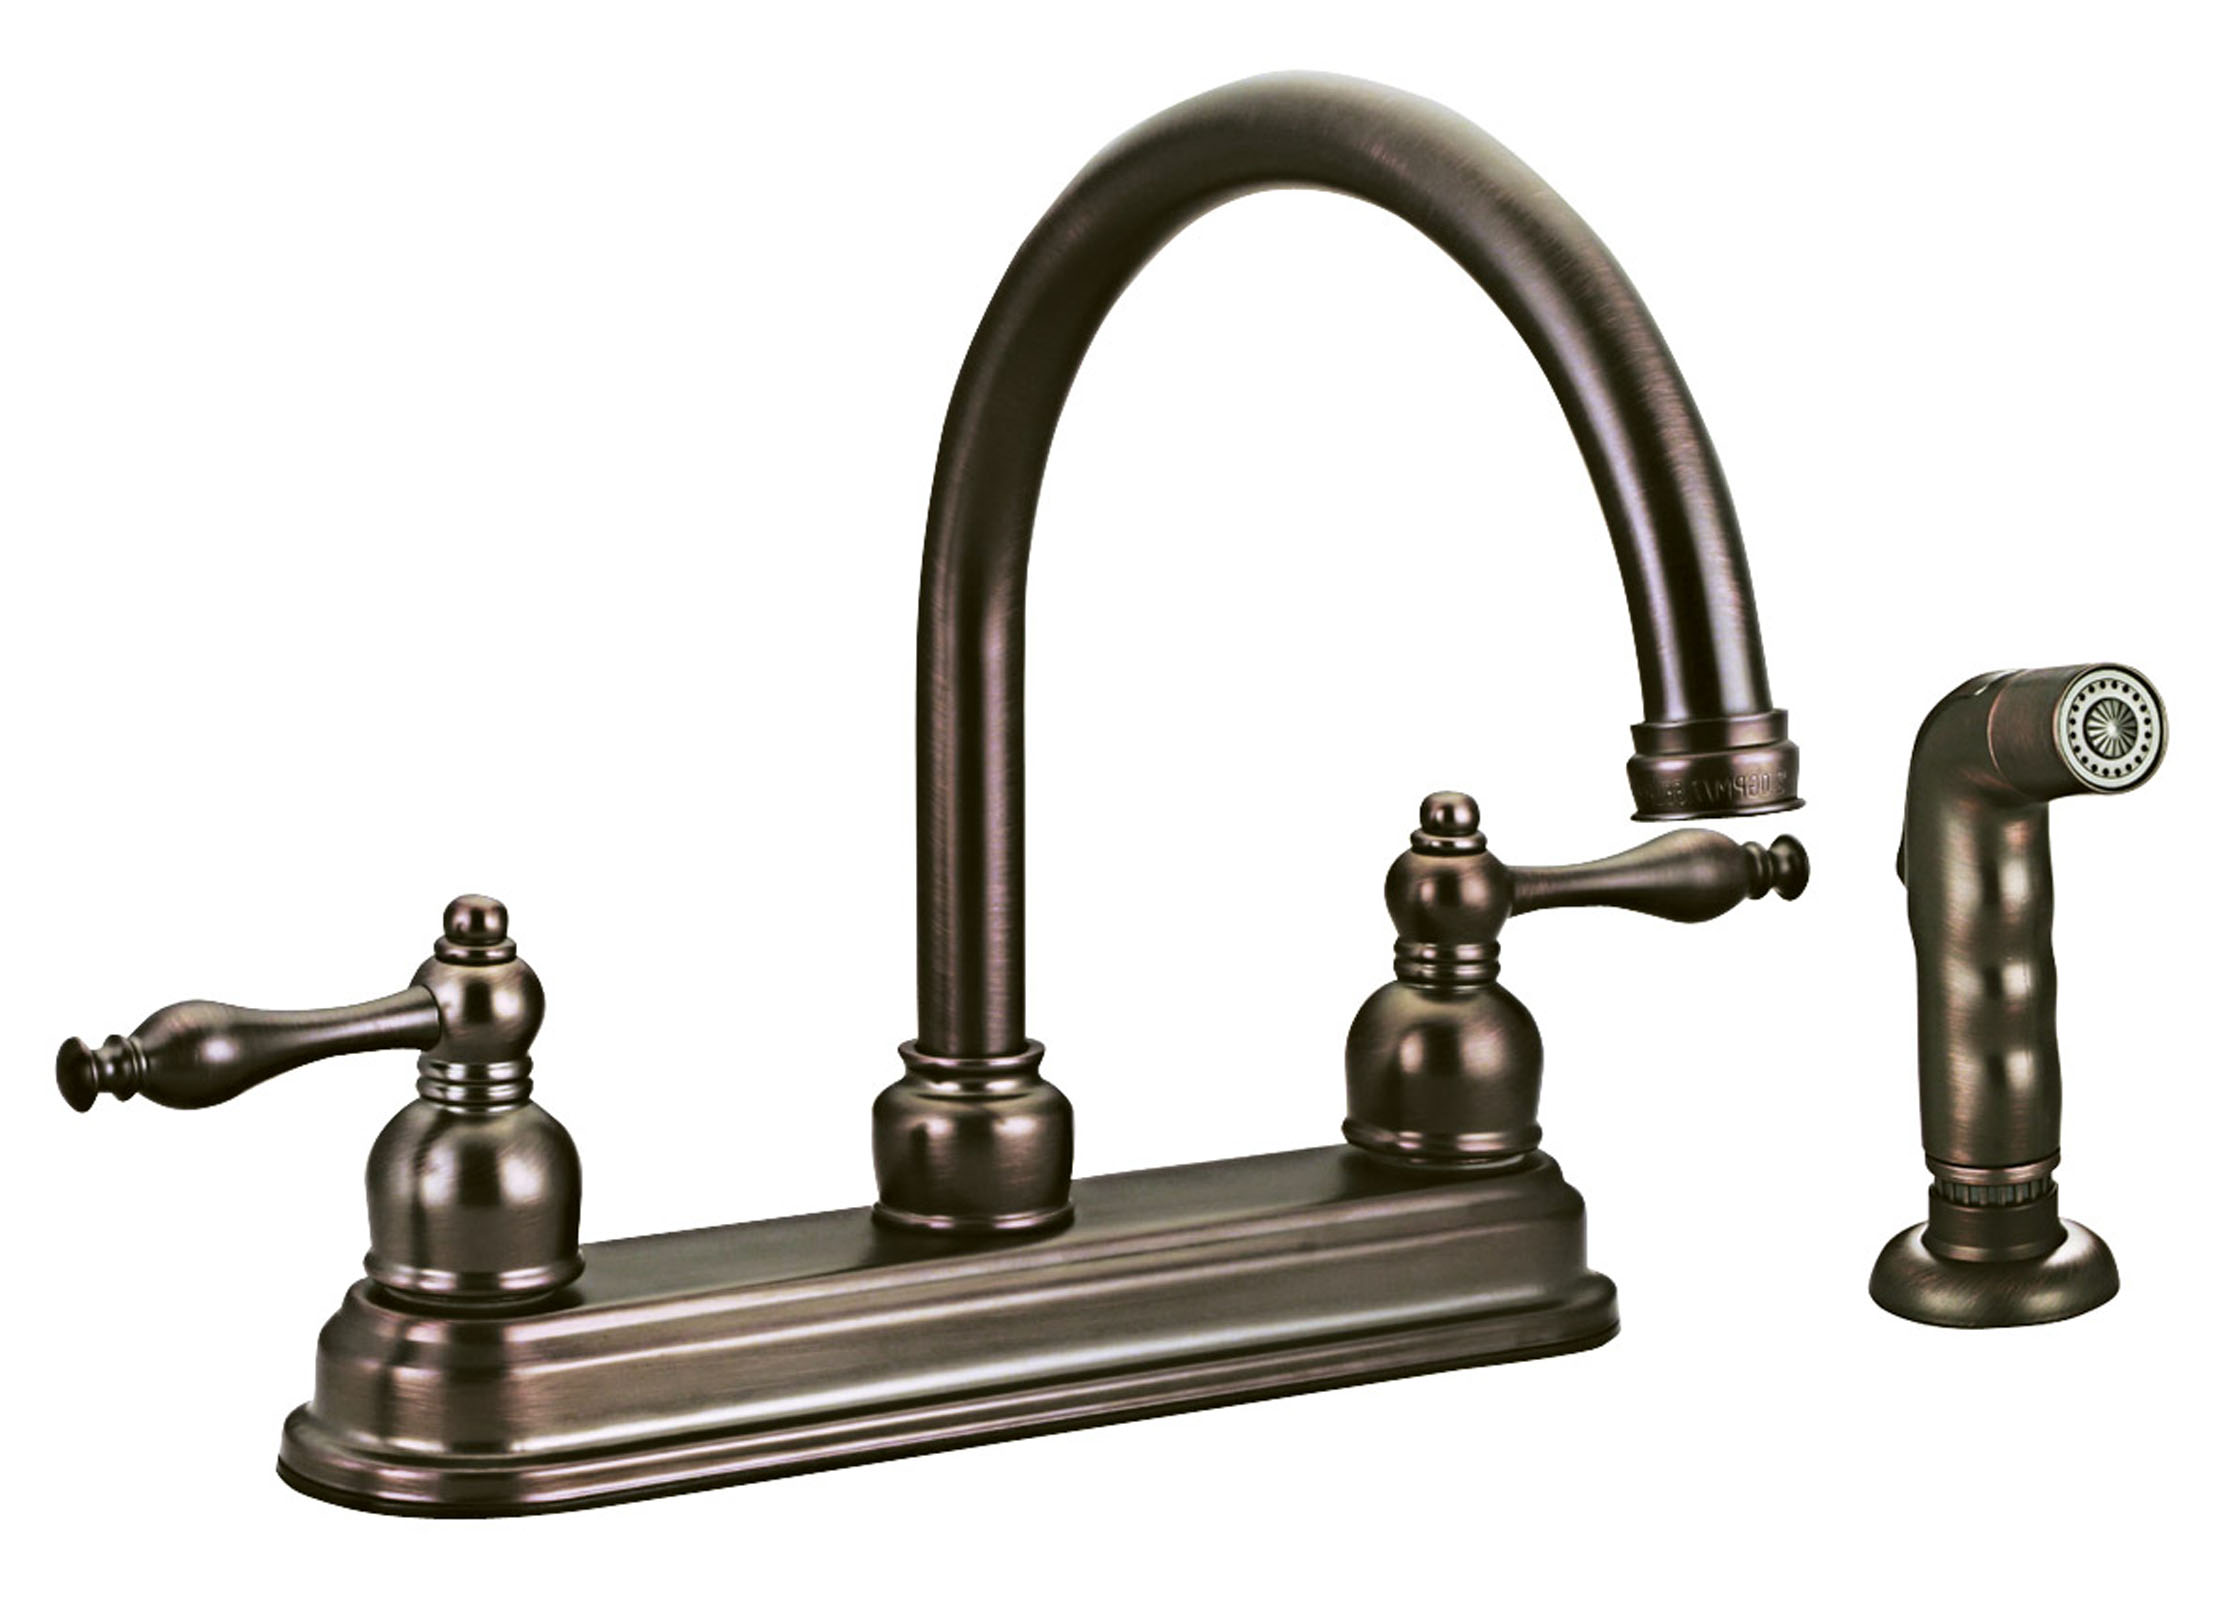 antique copper kitchen faucet who makes the best cabinets design house 545343 saratoga with sprayer